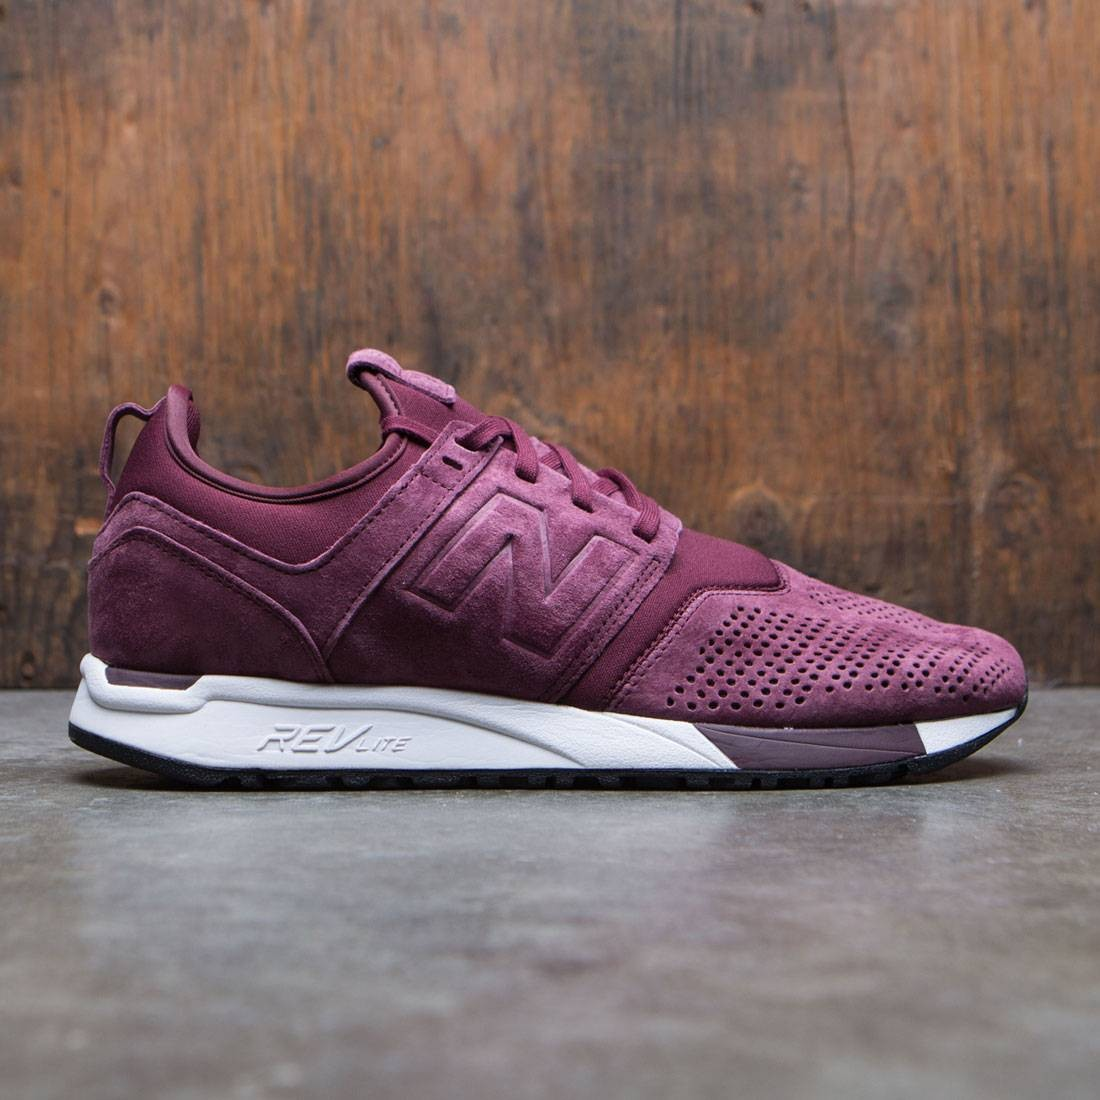 save off wholesale price on feet images of New Balance Men Suede 247 MRL247LR (burgundy / white)